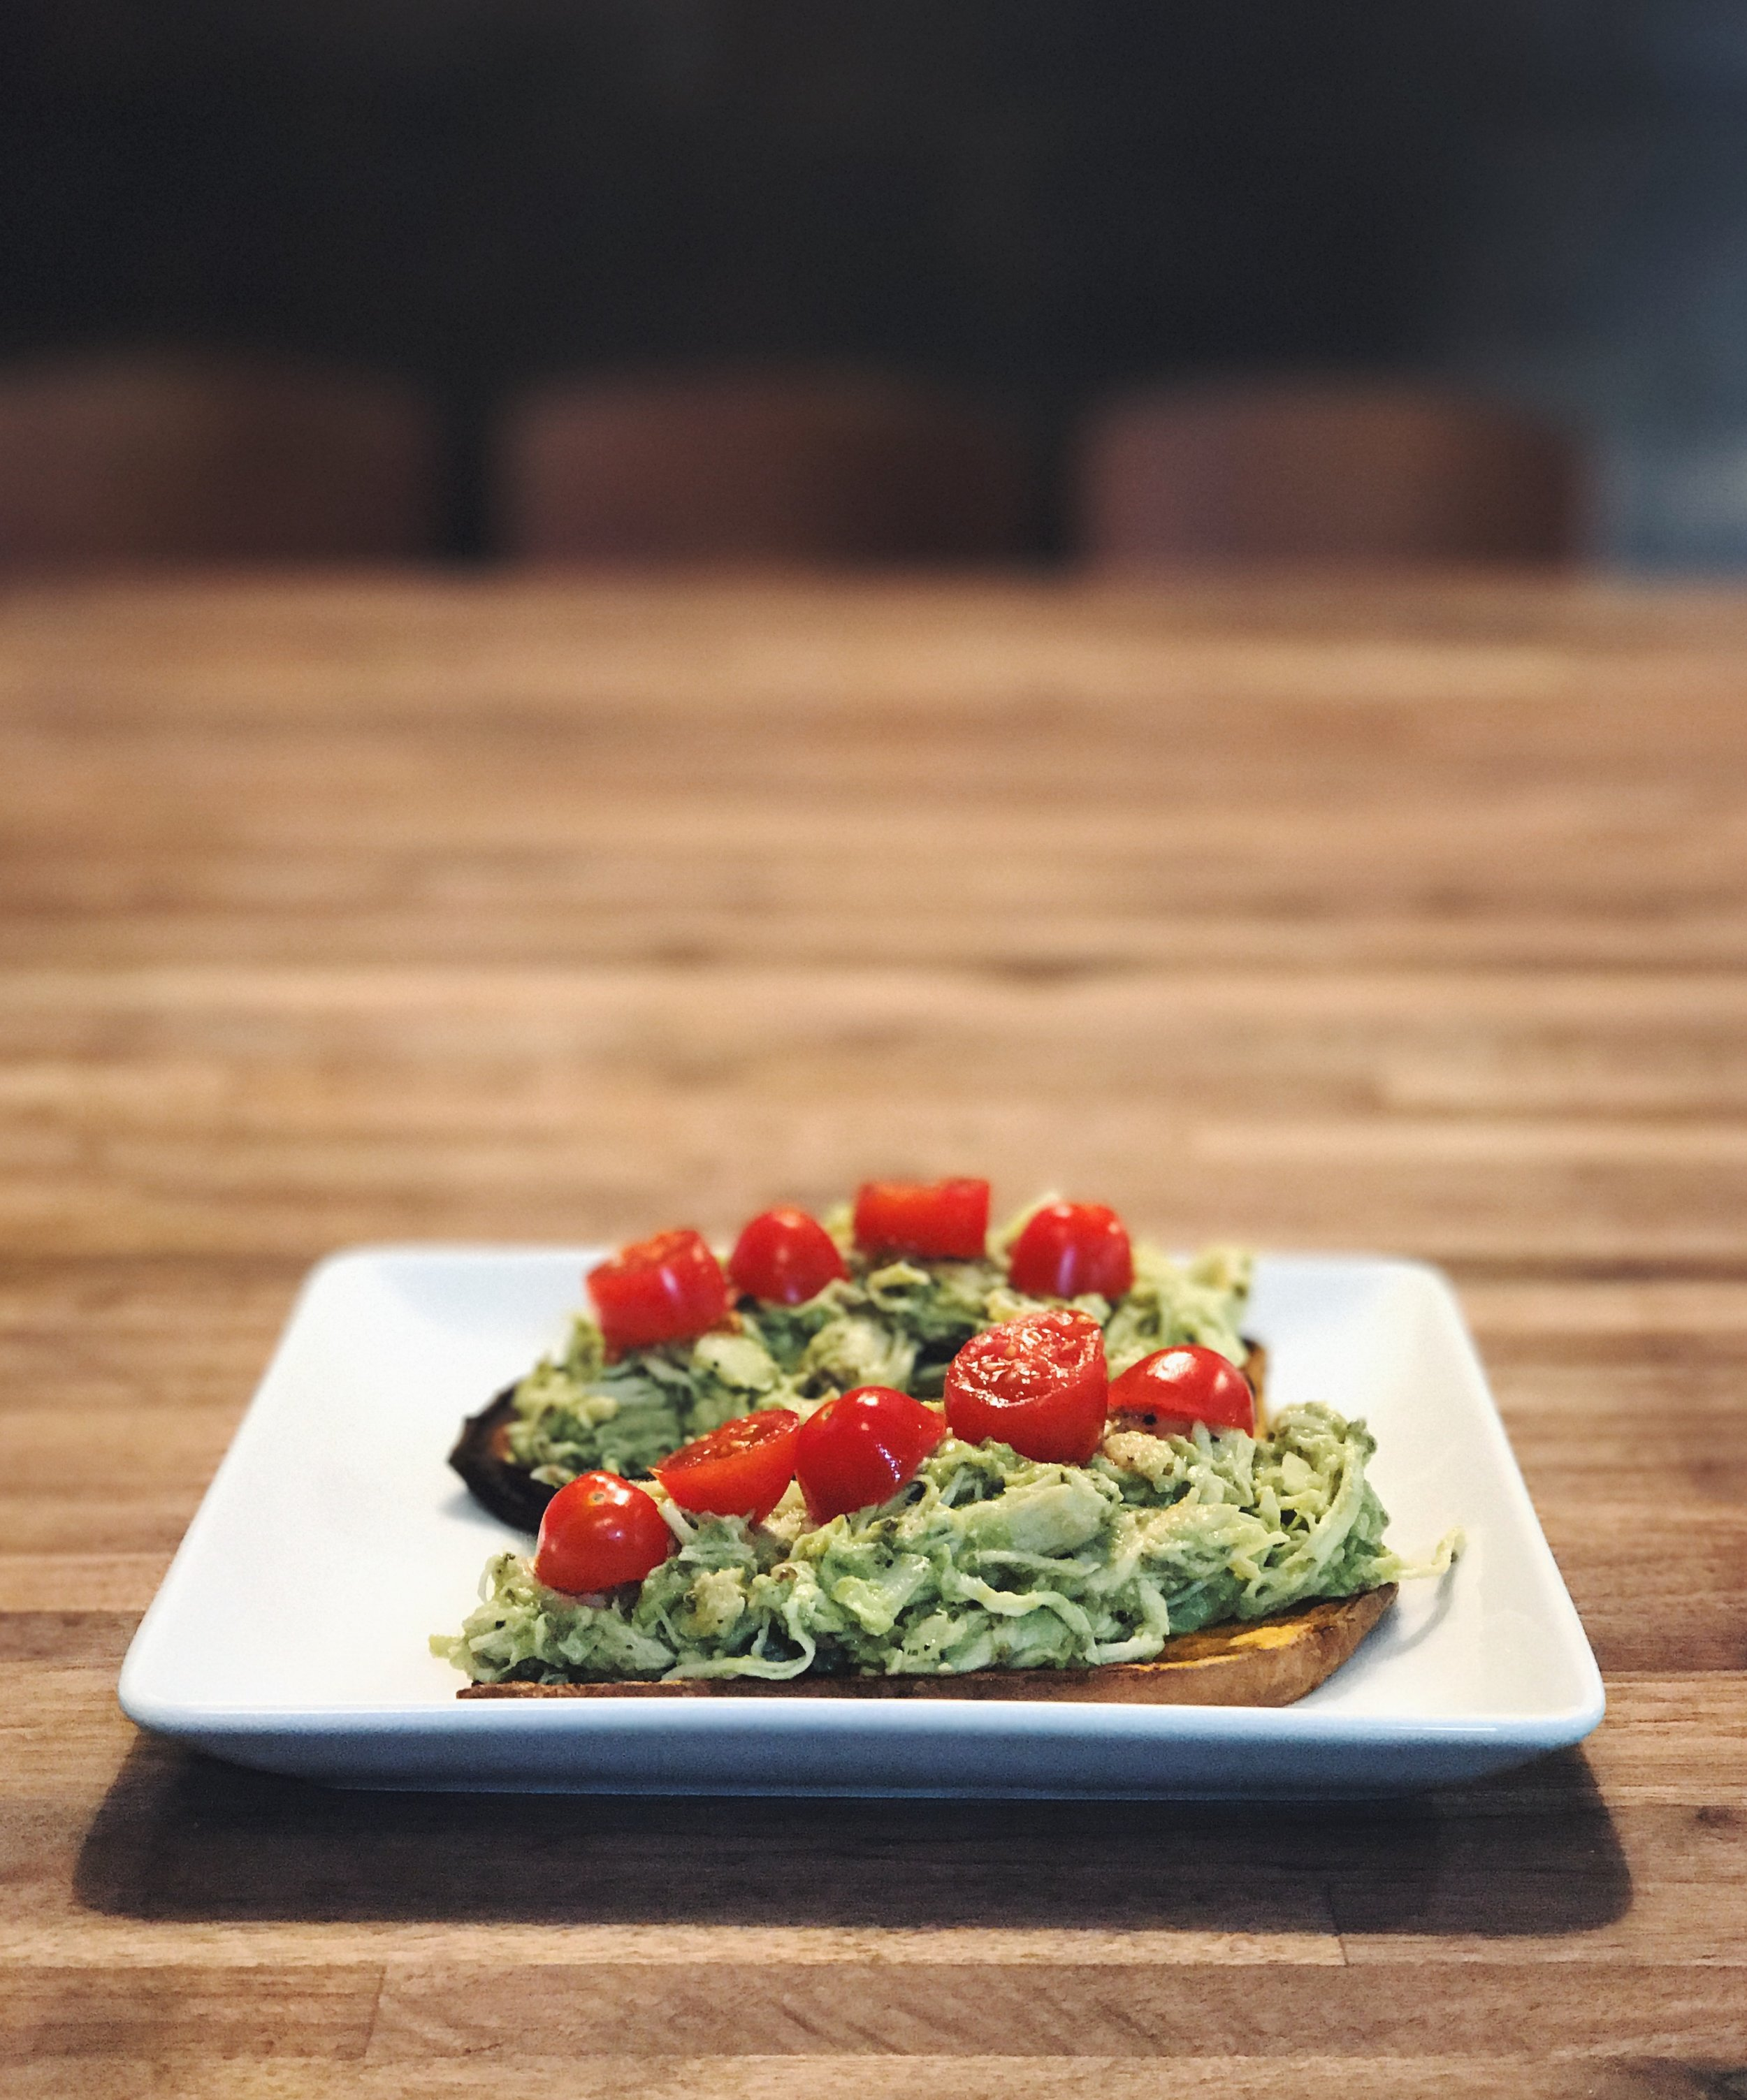 Have your avocado toast and eat it too